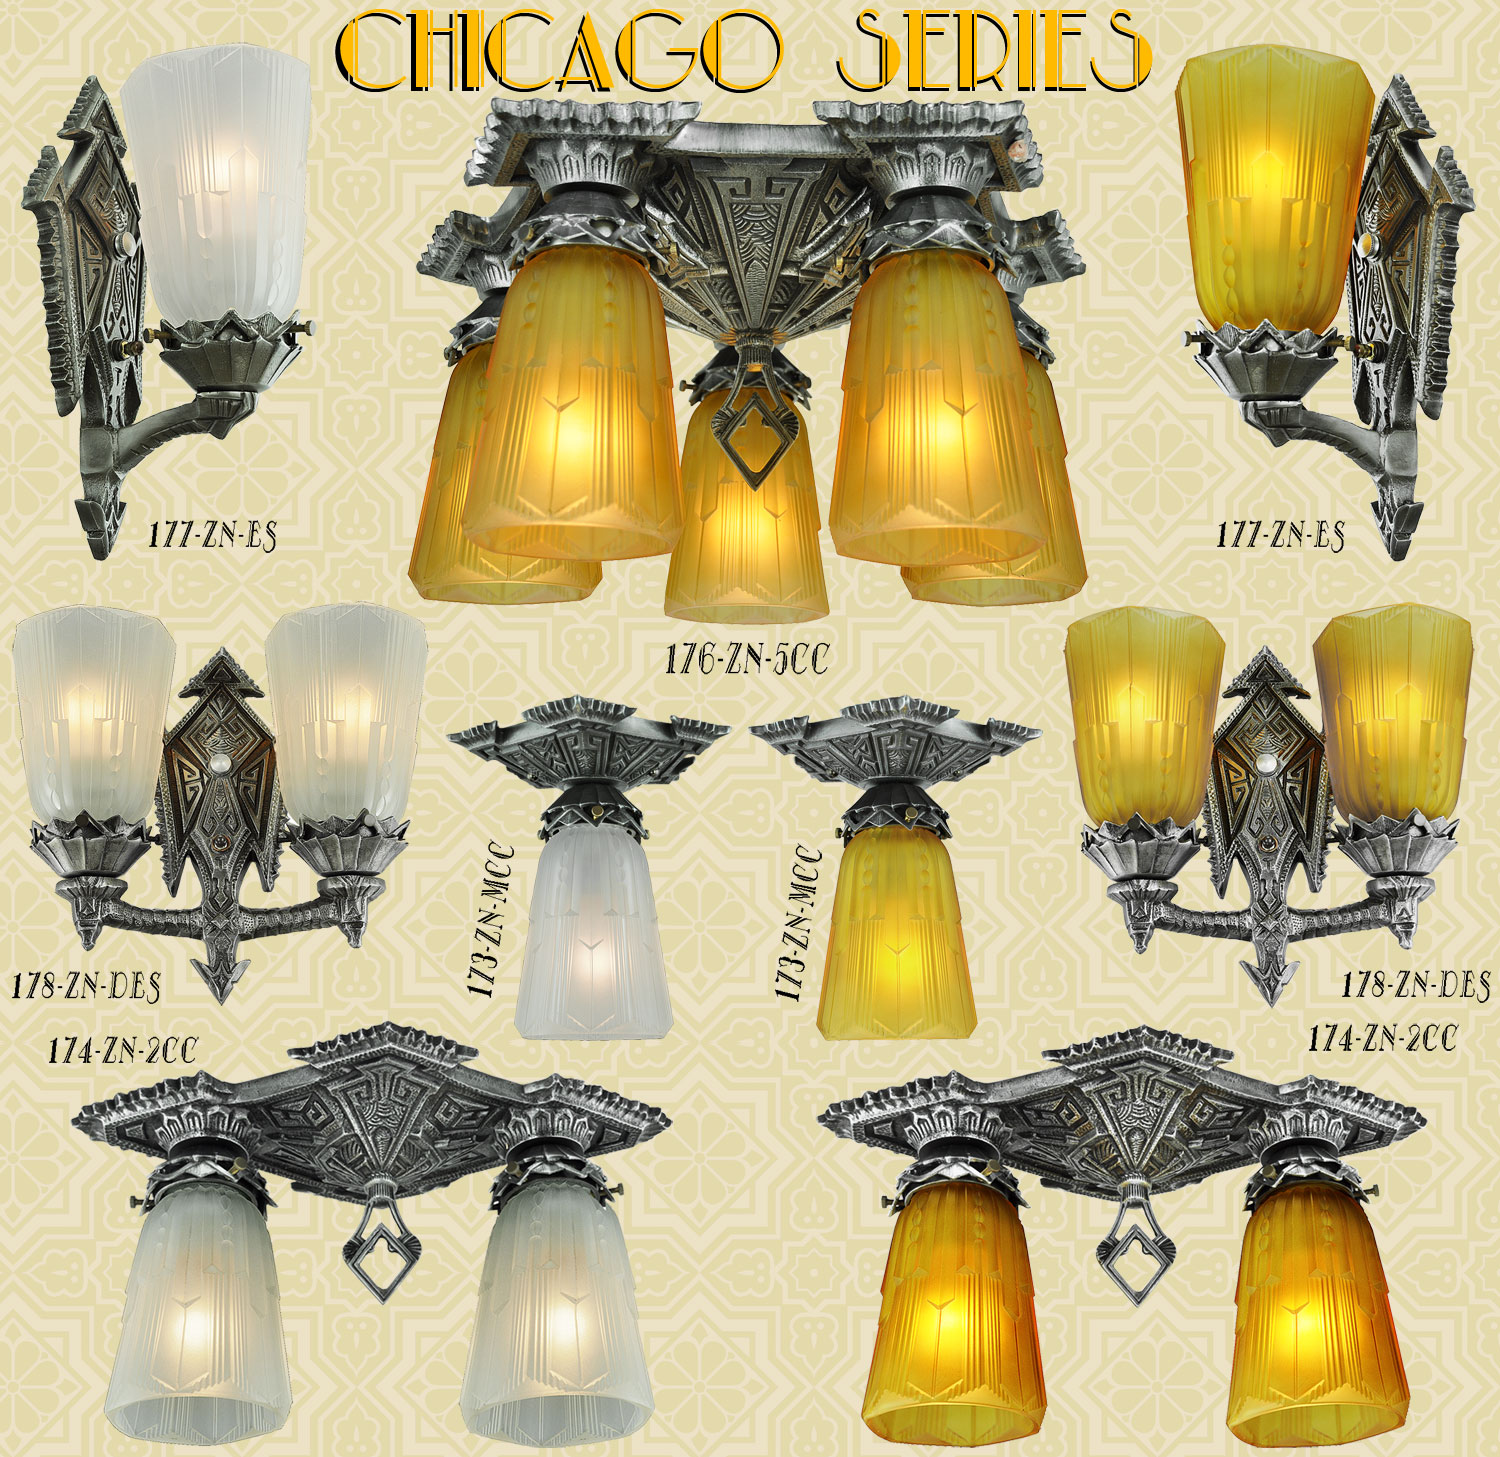 Deco Lighting Blog